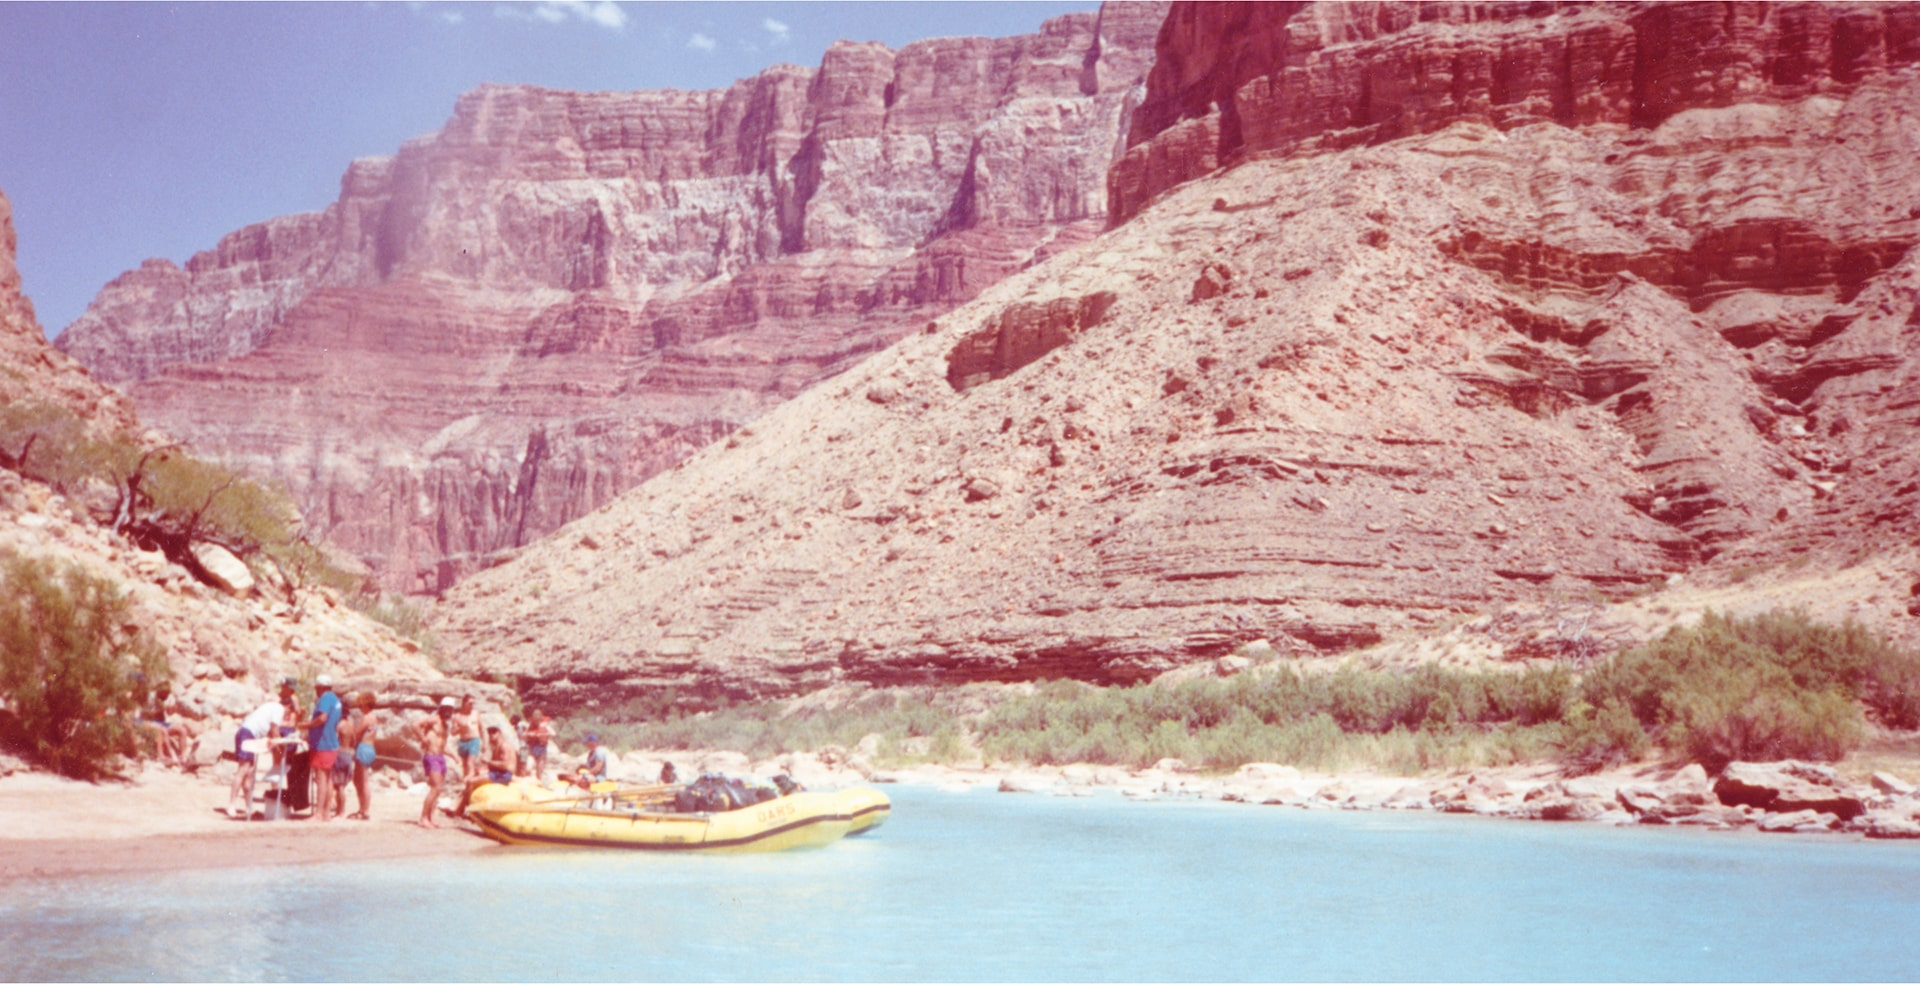 Vitage photo of Grand Canyon rafting trip.